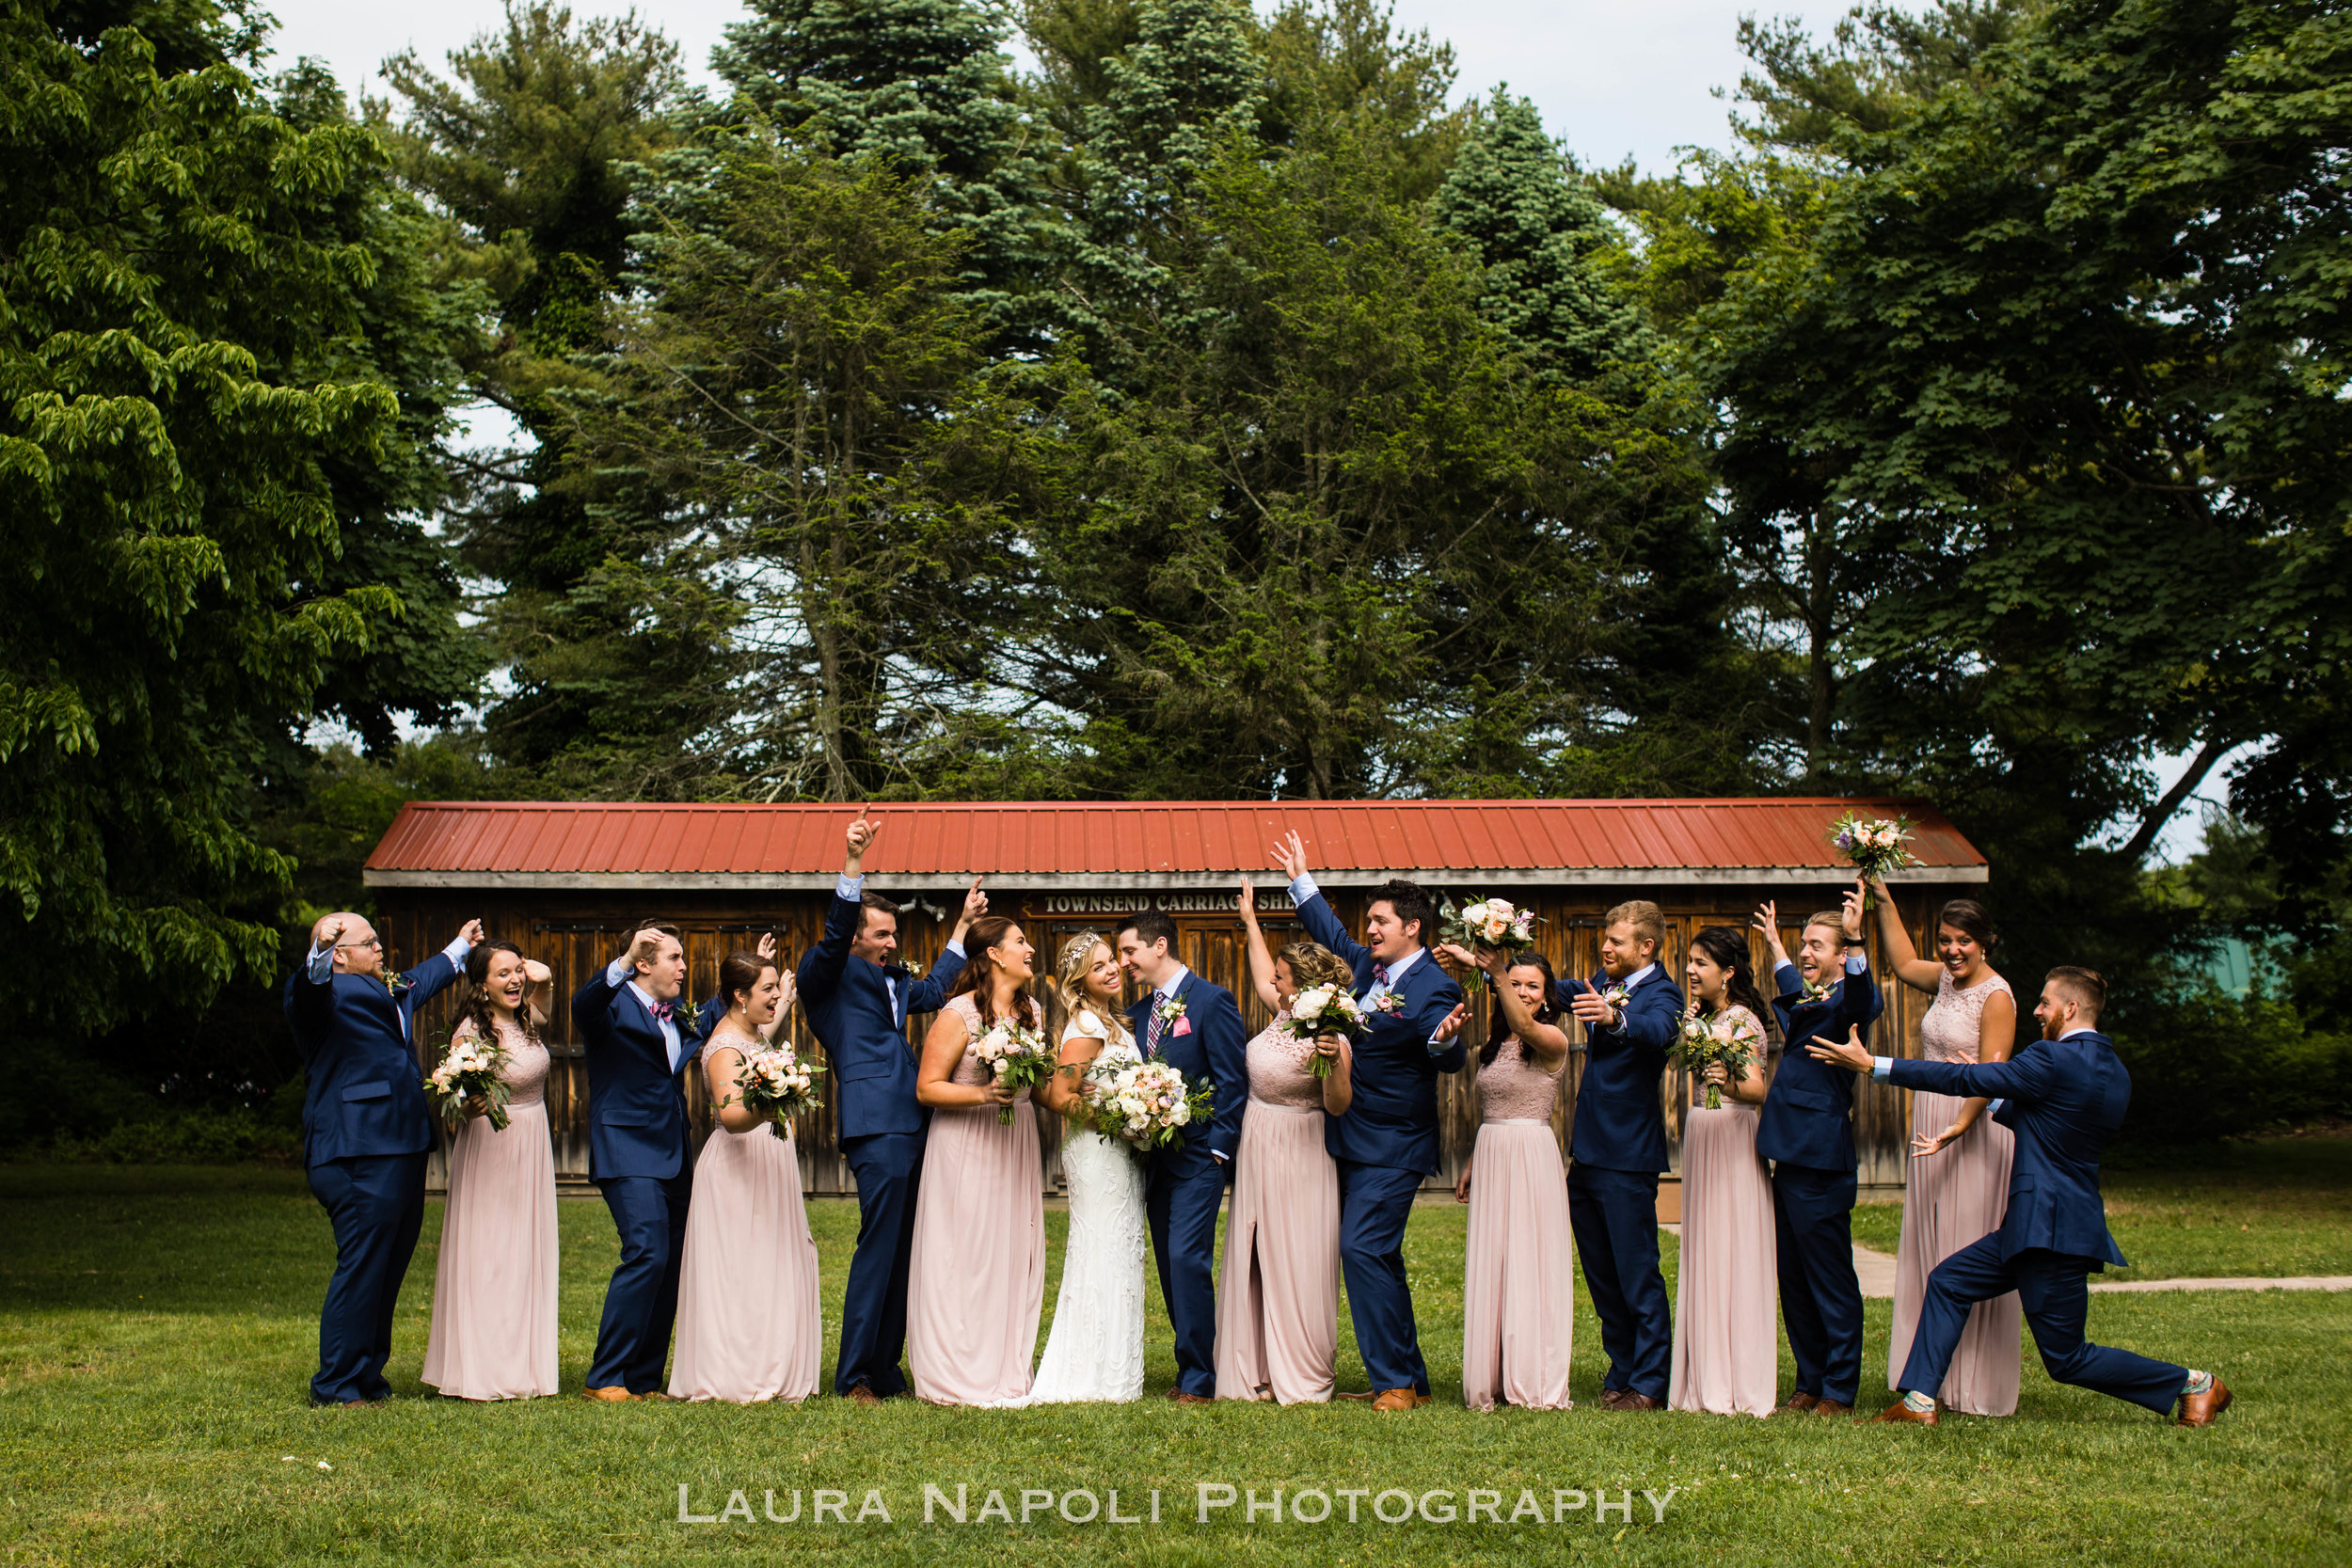 abbieholmesestateweddingcapemaynjweddingphotographer-18.jpg